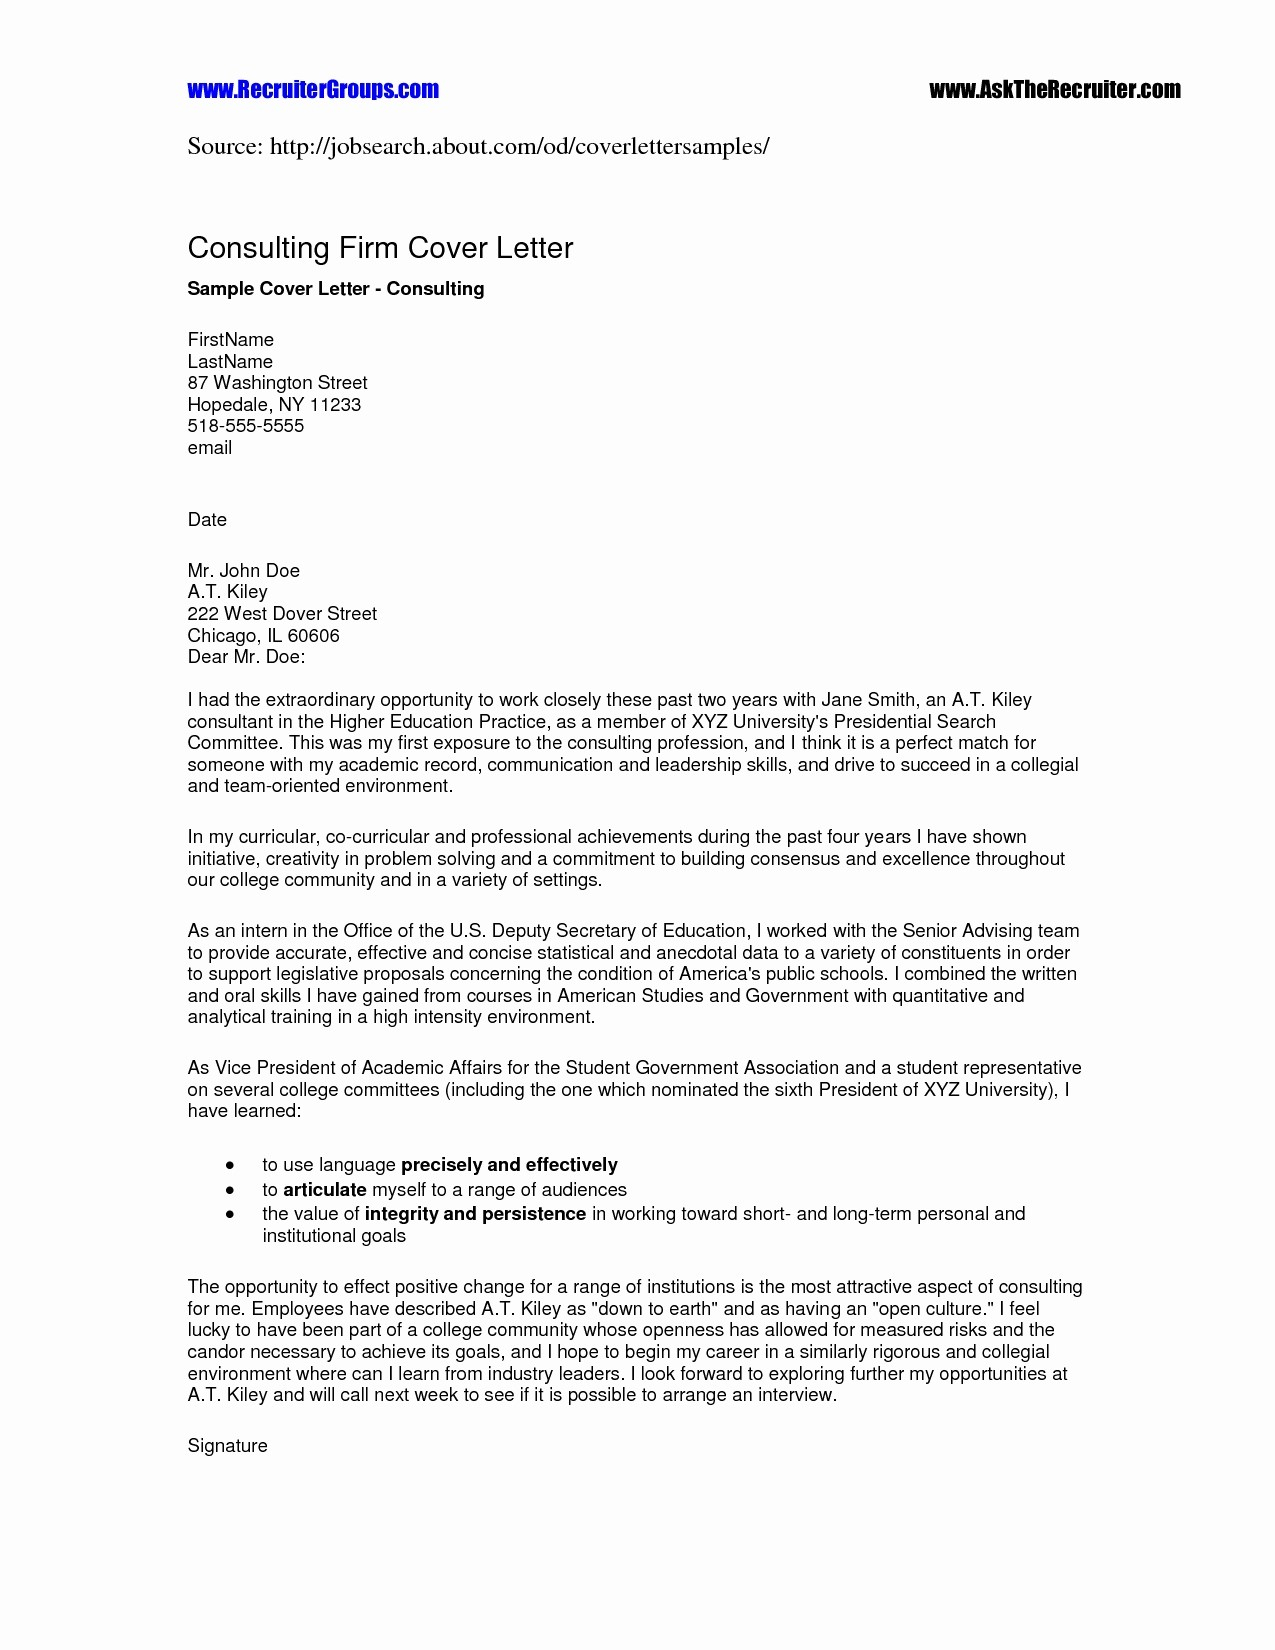 Reference Letter Template Sample - Sample Cover Letter for Good Conduct Certificate Fresh Reference